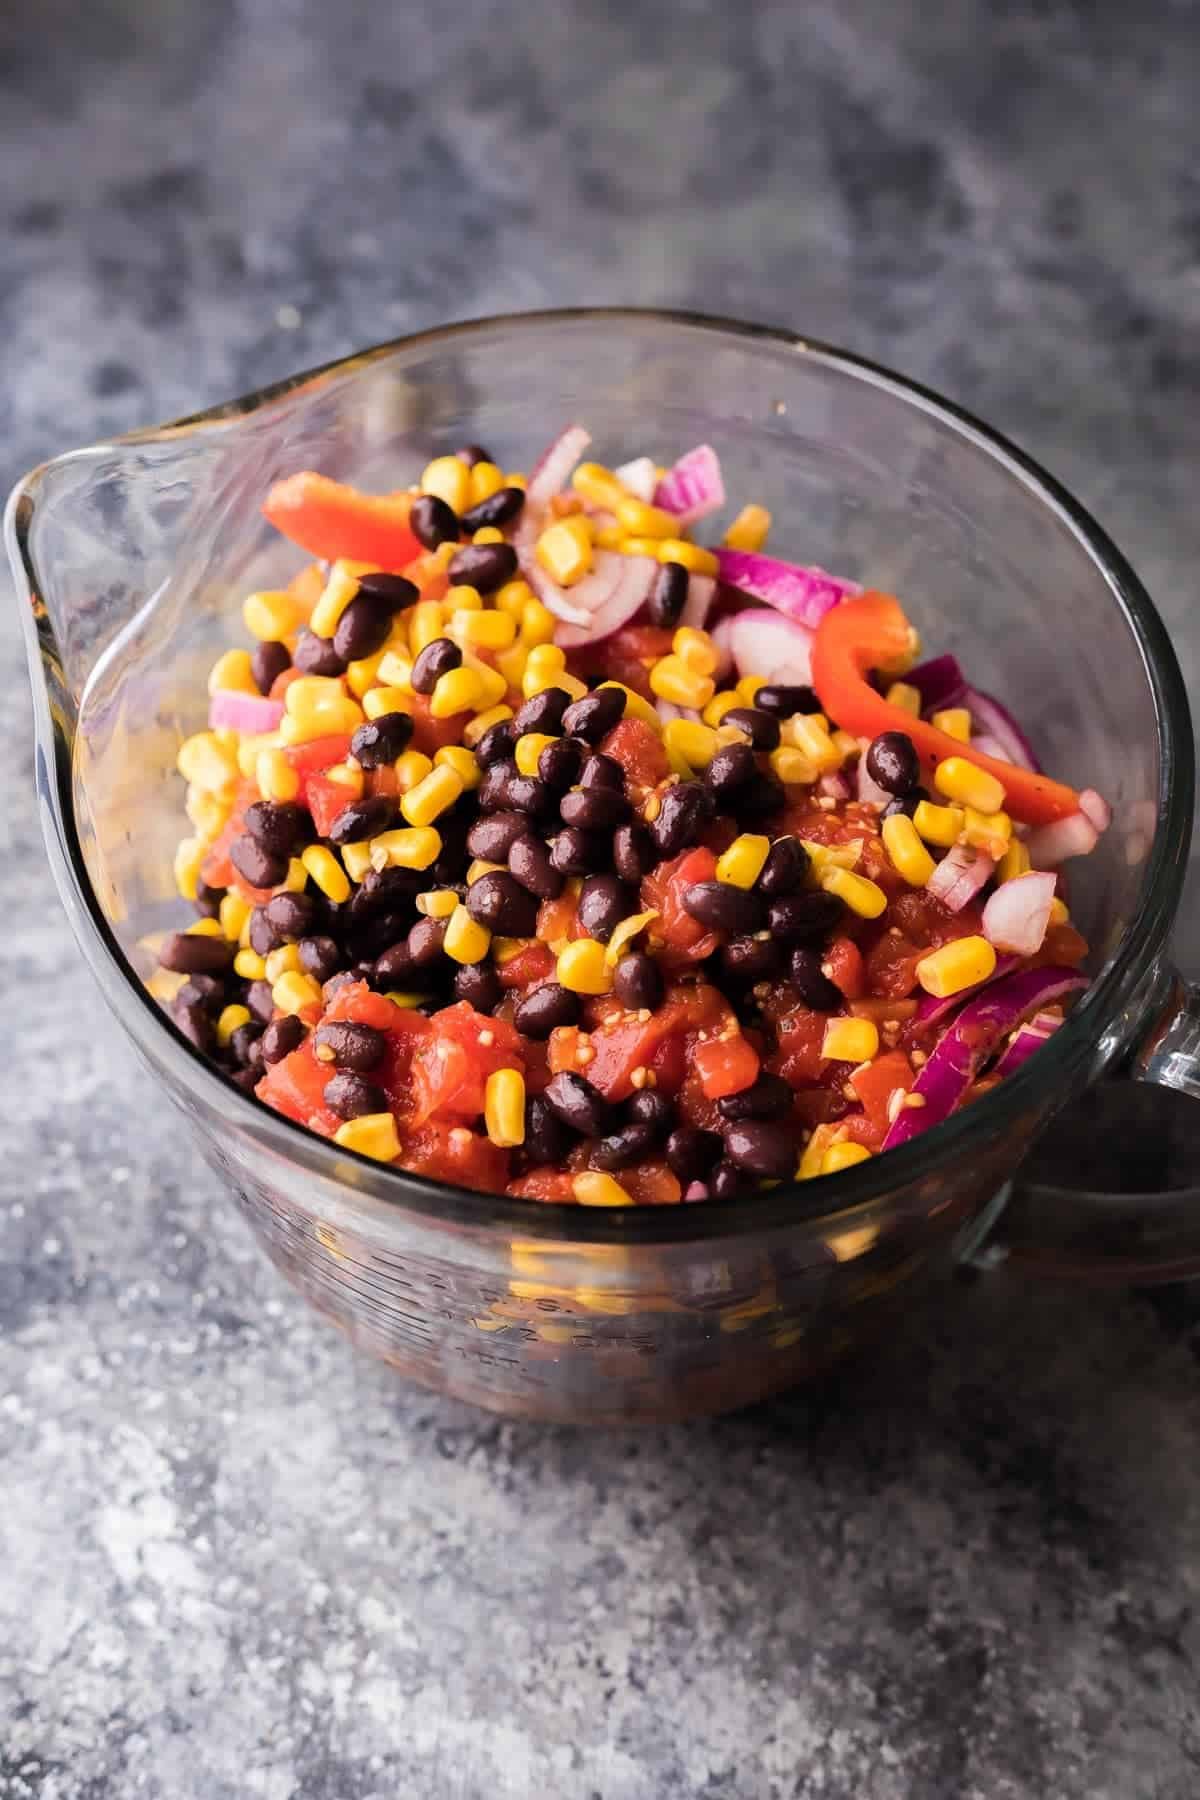 (Make Ahead) One Pot Black Bean Fajita Pasta: assemble this recipe during your meal prep, then stash it in the freezer or fridge until you're ready to cook!